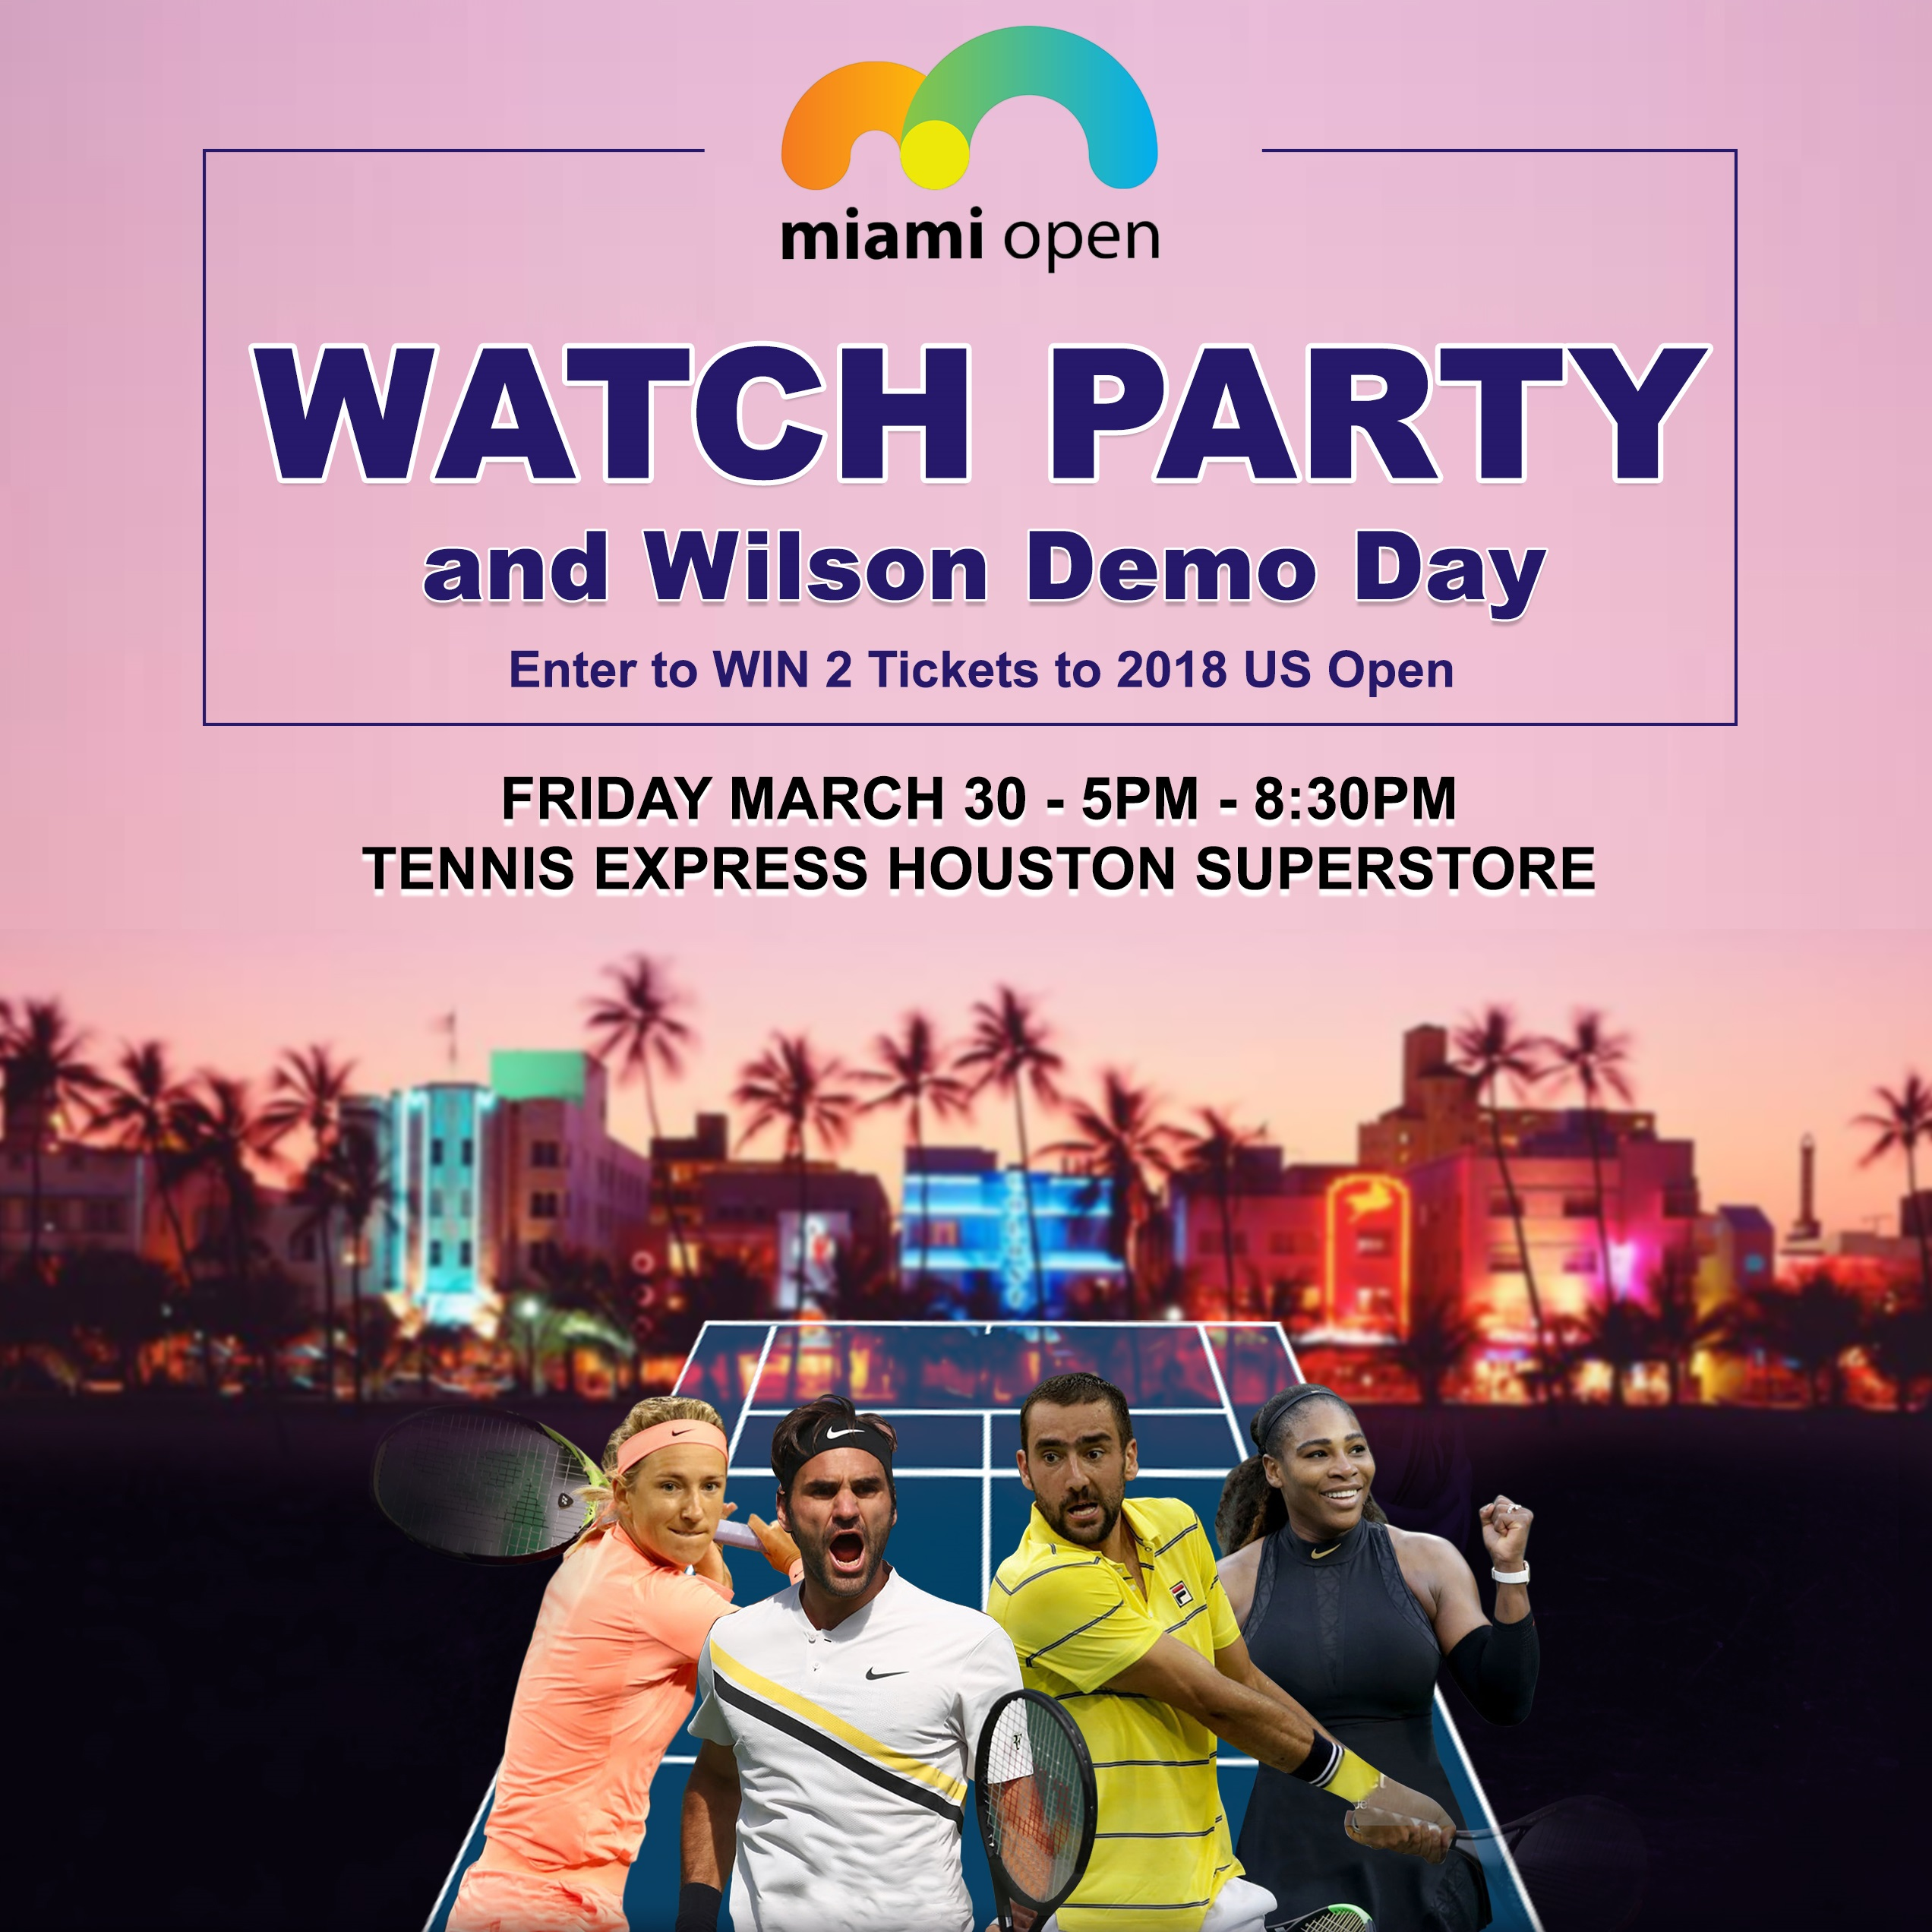 Catch the Second Half of the Sunshine Double at Tennis Express